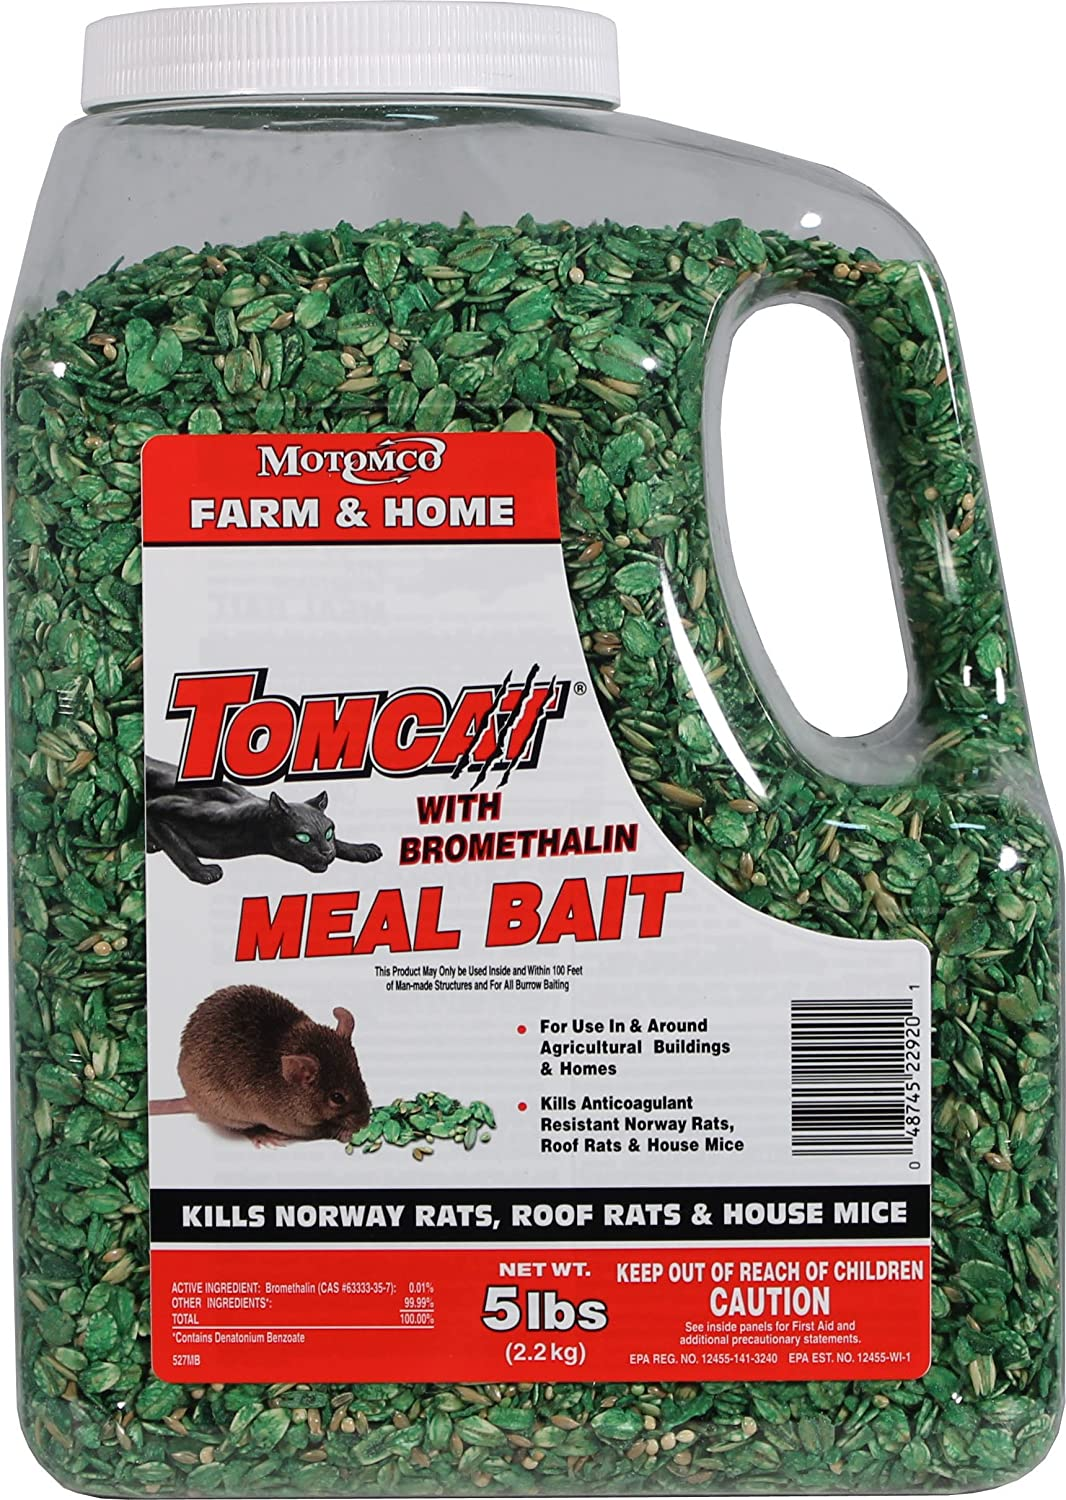 Motomco 008-22920 198889 Tomcat with Bromethalin Meal Bait, 5 lb